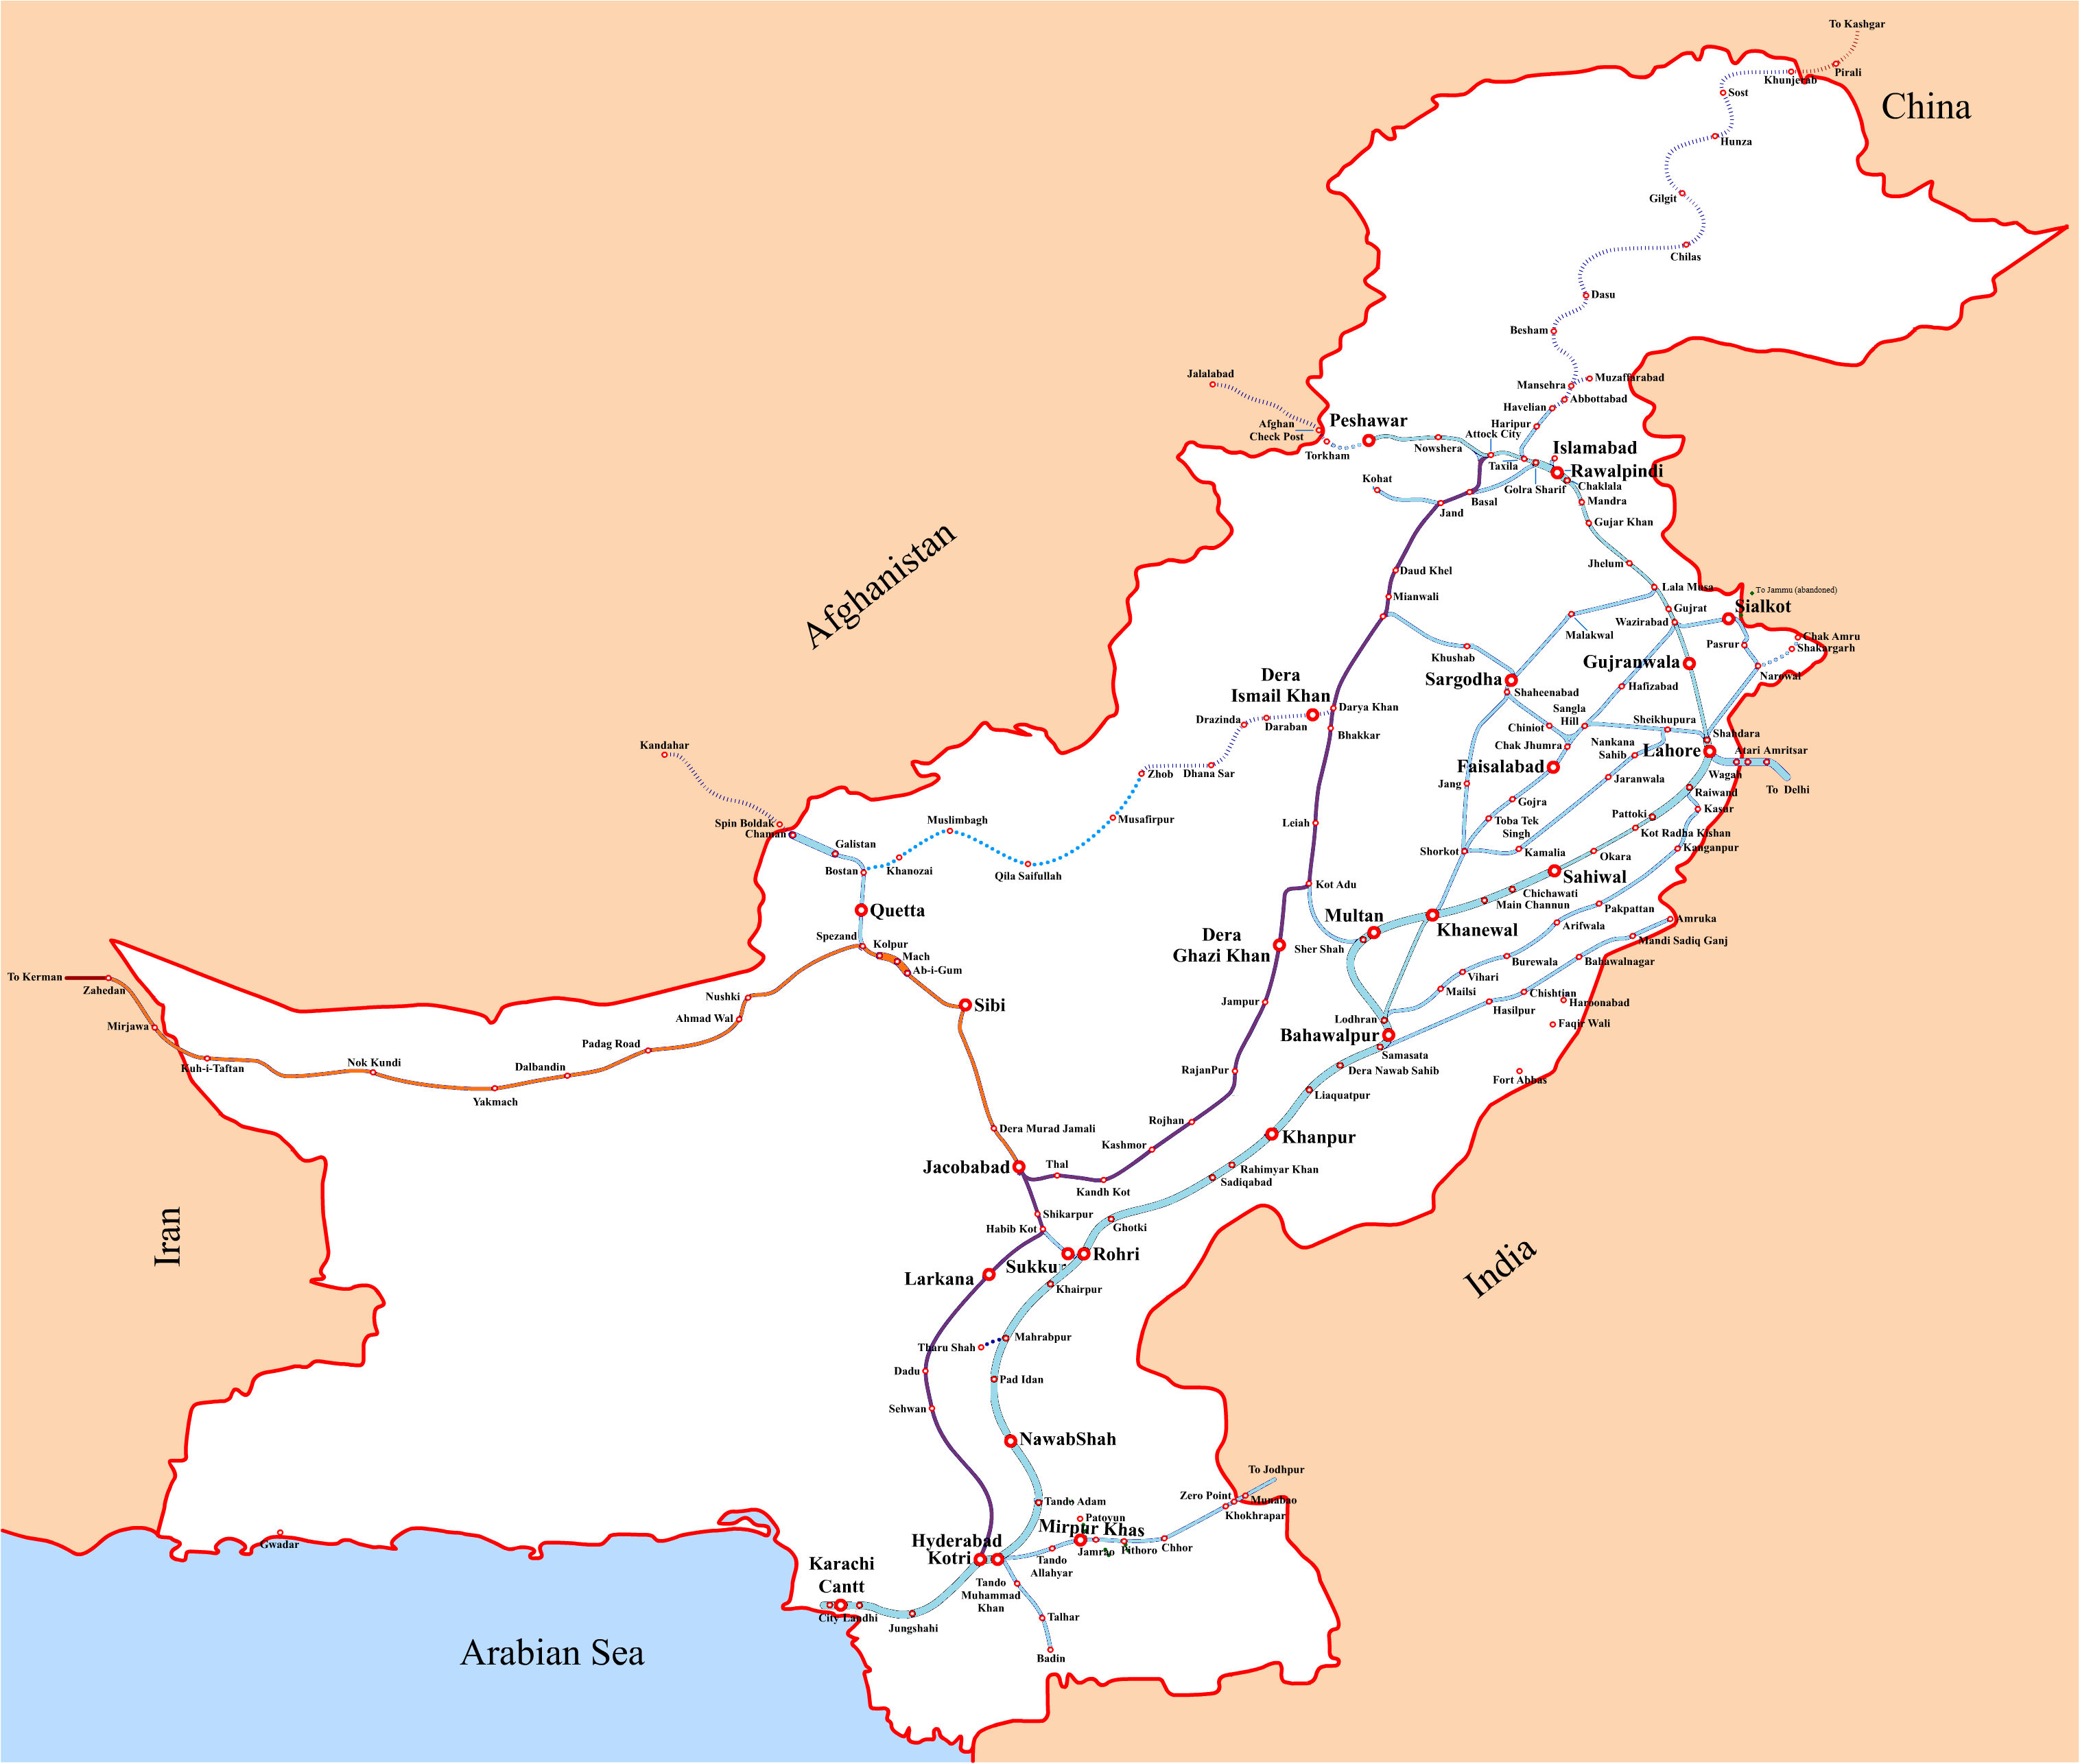 thesis on pakistan railways Read more about pakistan railways is getting an upgrade thanks to china's billions on business standard along with decades of under-investment, the rail company has also suffered from ingrained graft.